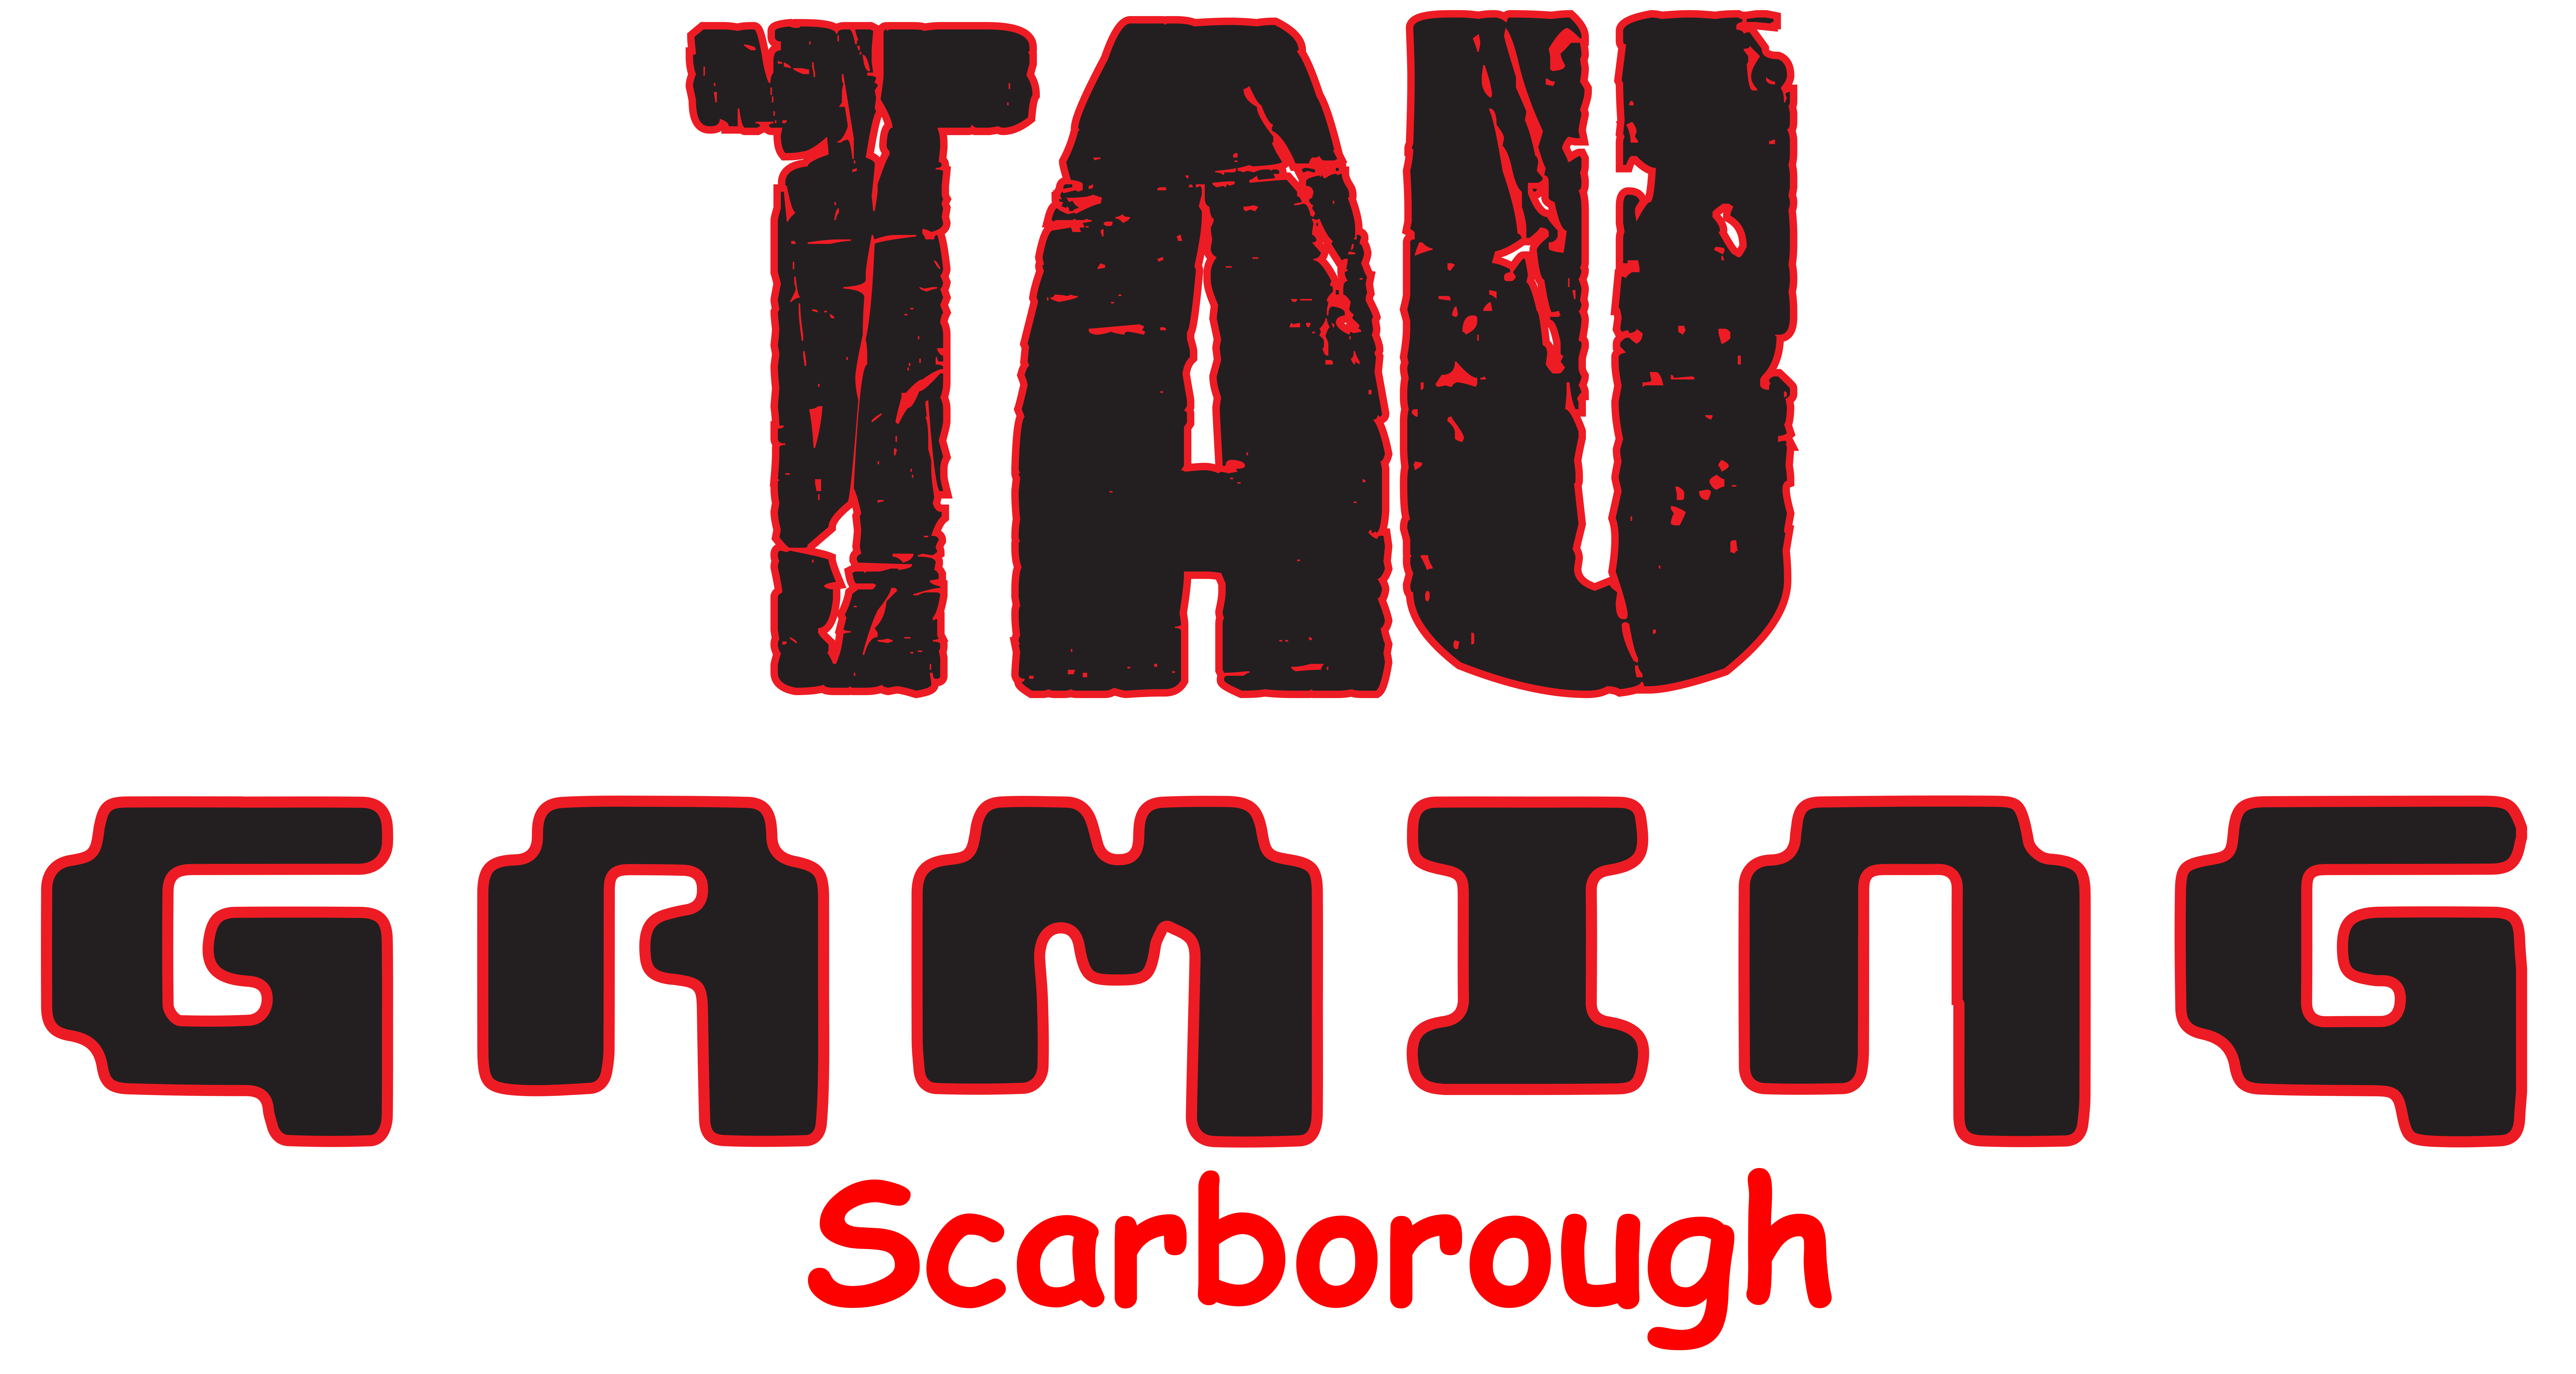 TAU GAMING SCARBOROUGH LIMITED